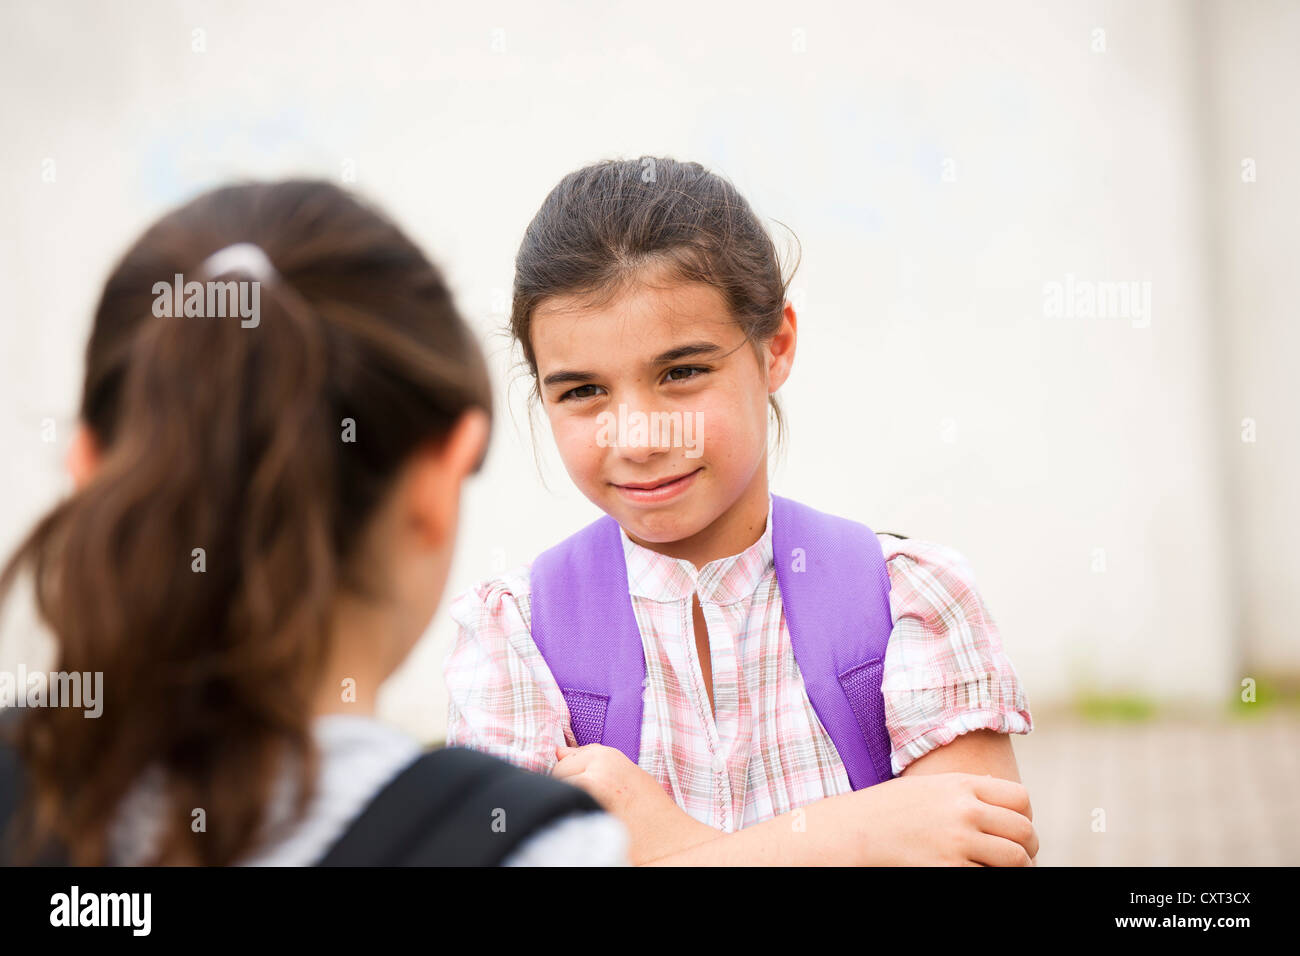 Two girls talking to each other on their way to school - Stock Image